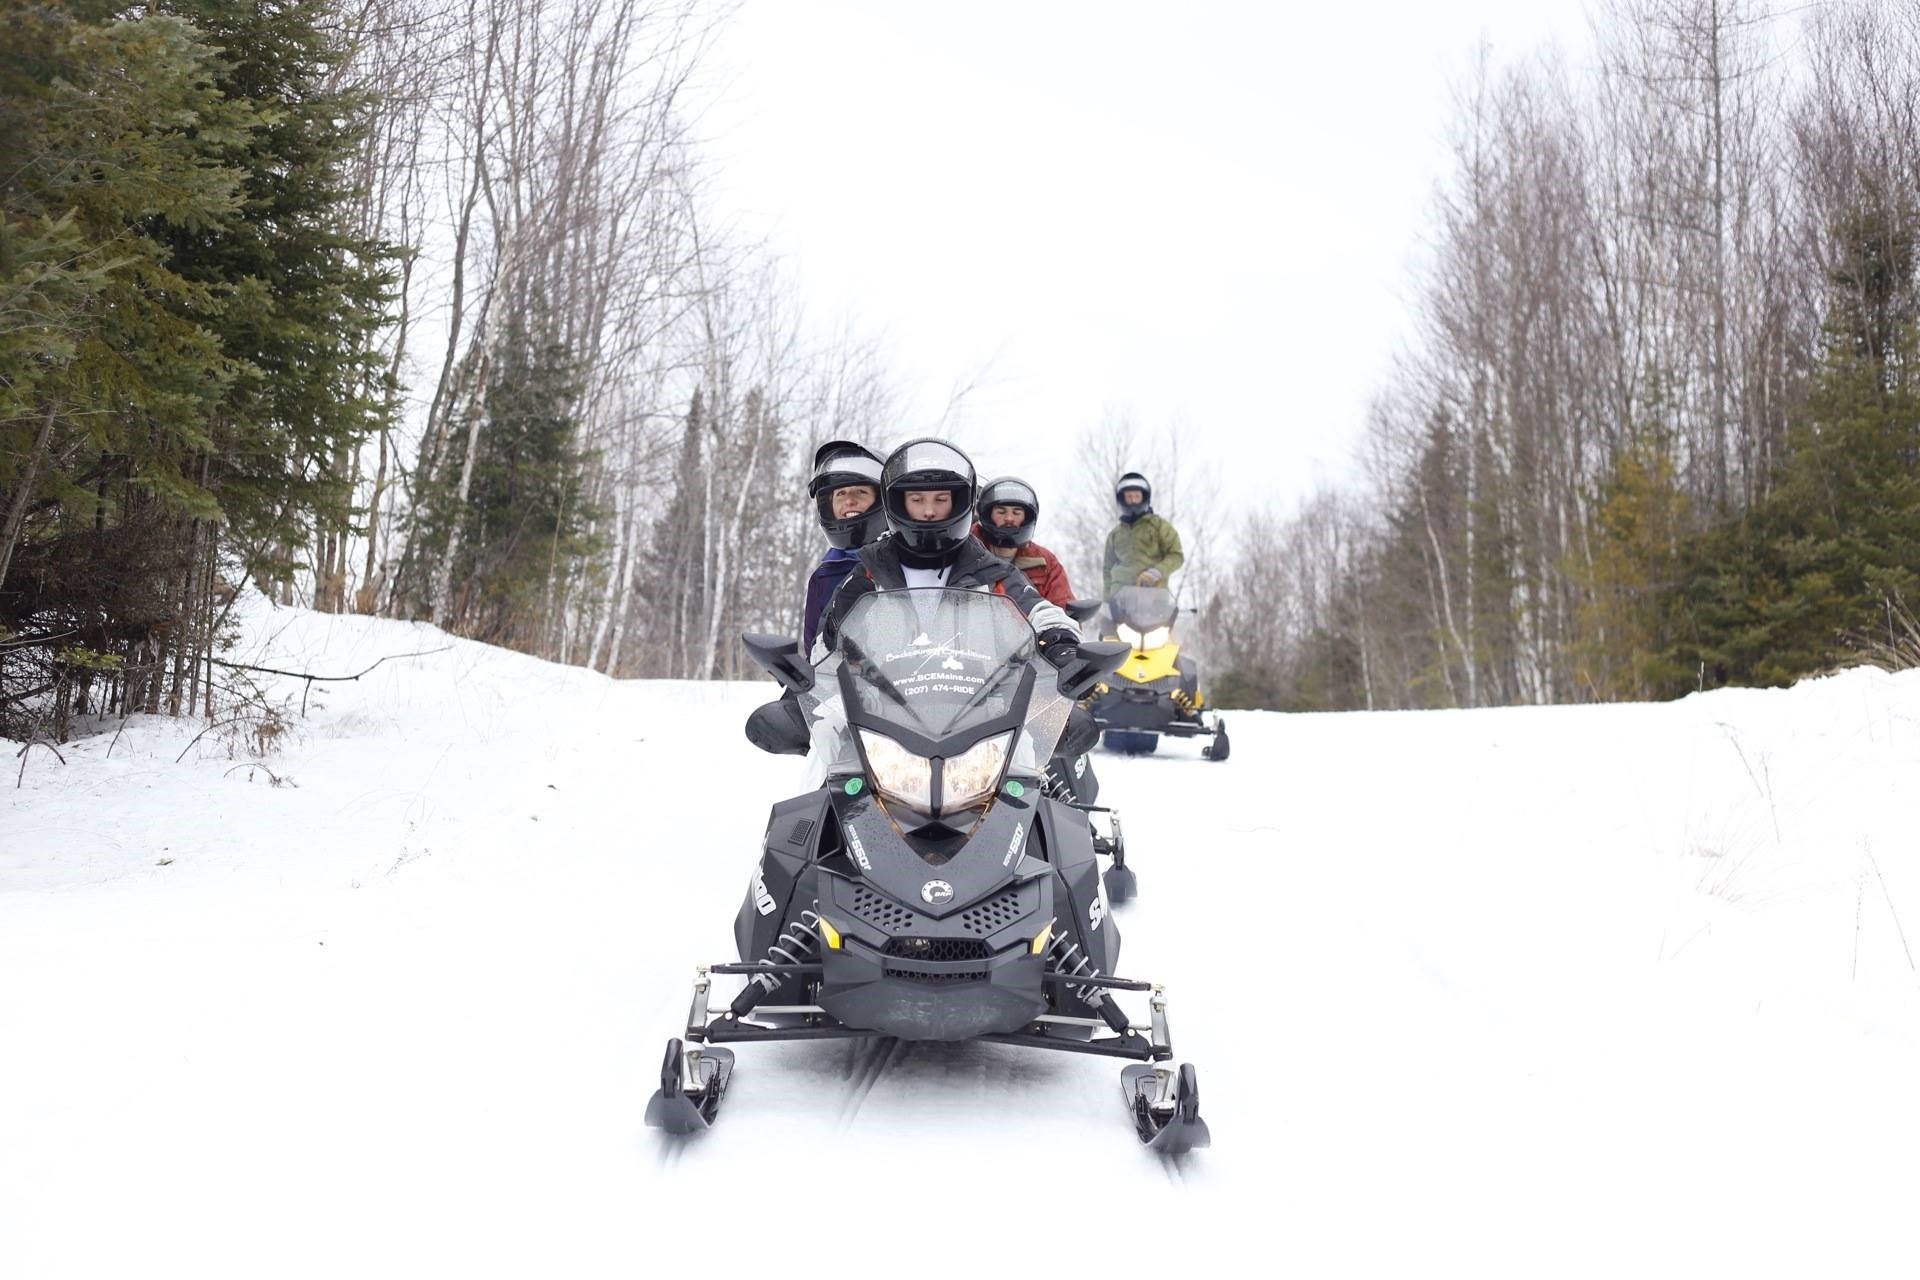 Grab friends and family for a great day of riding and memory making on the trails.